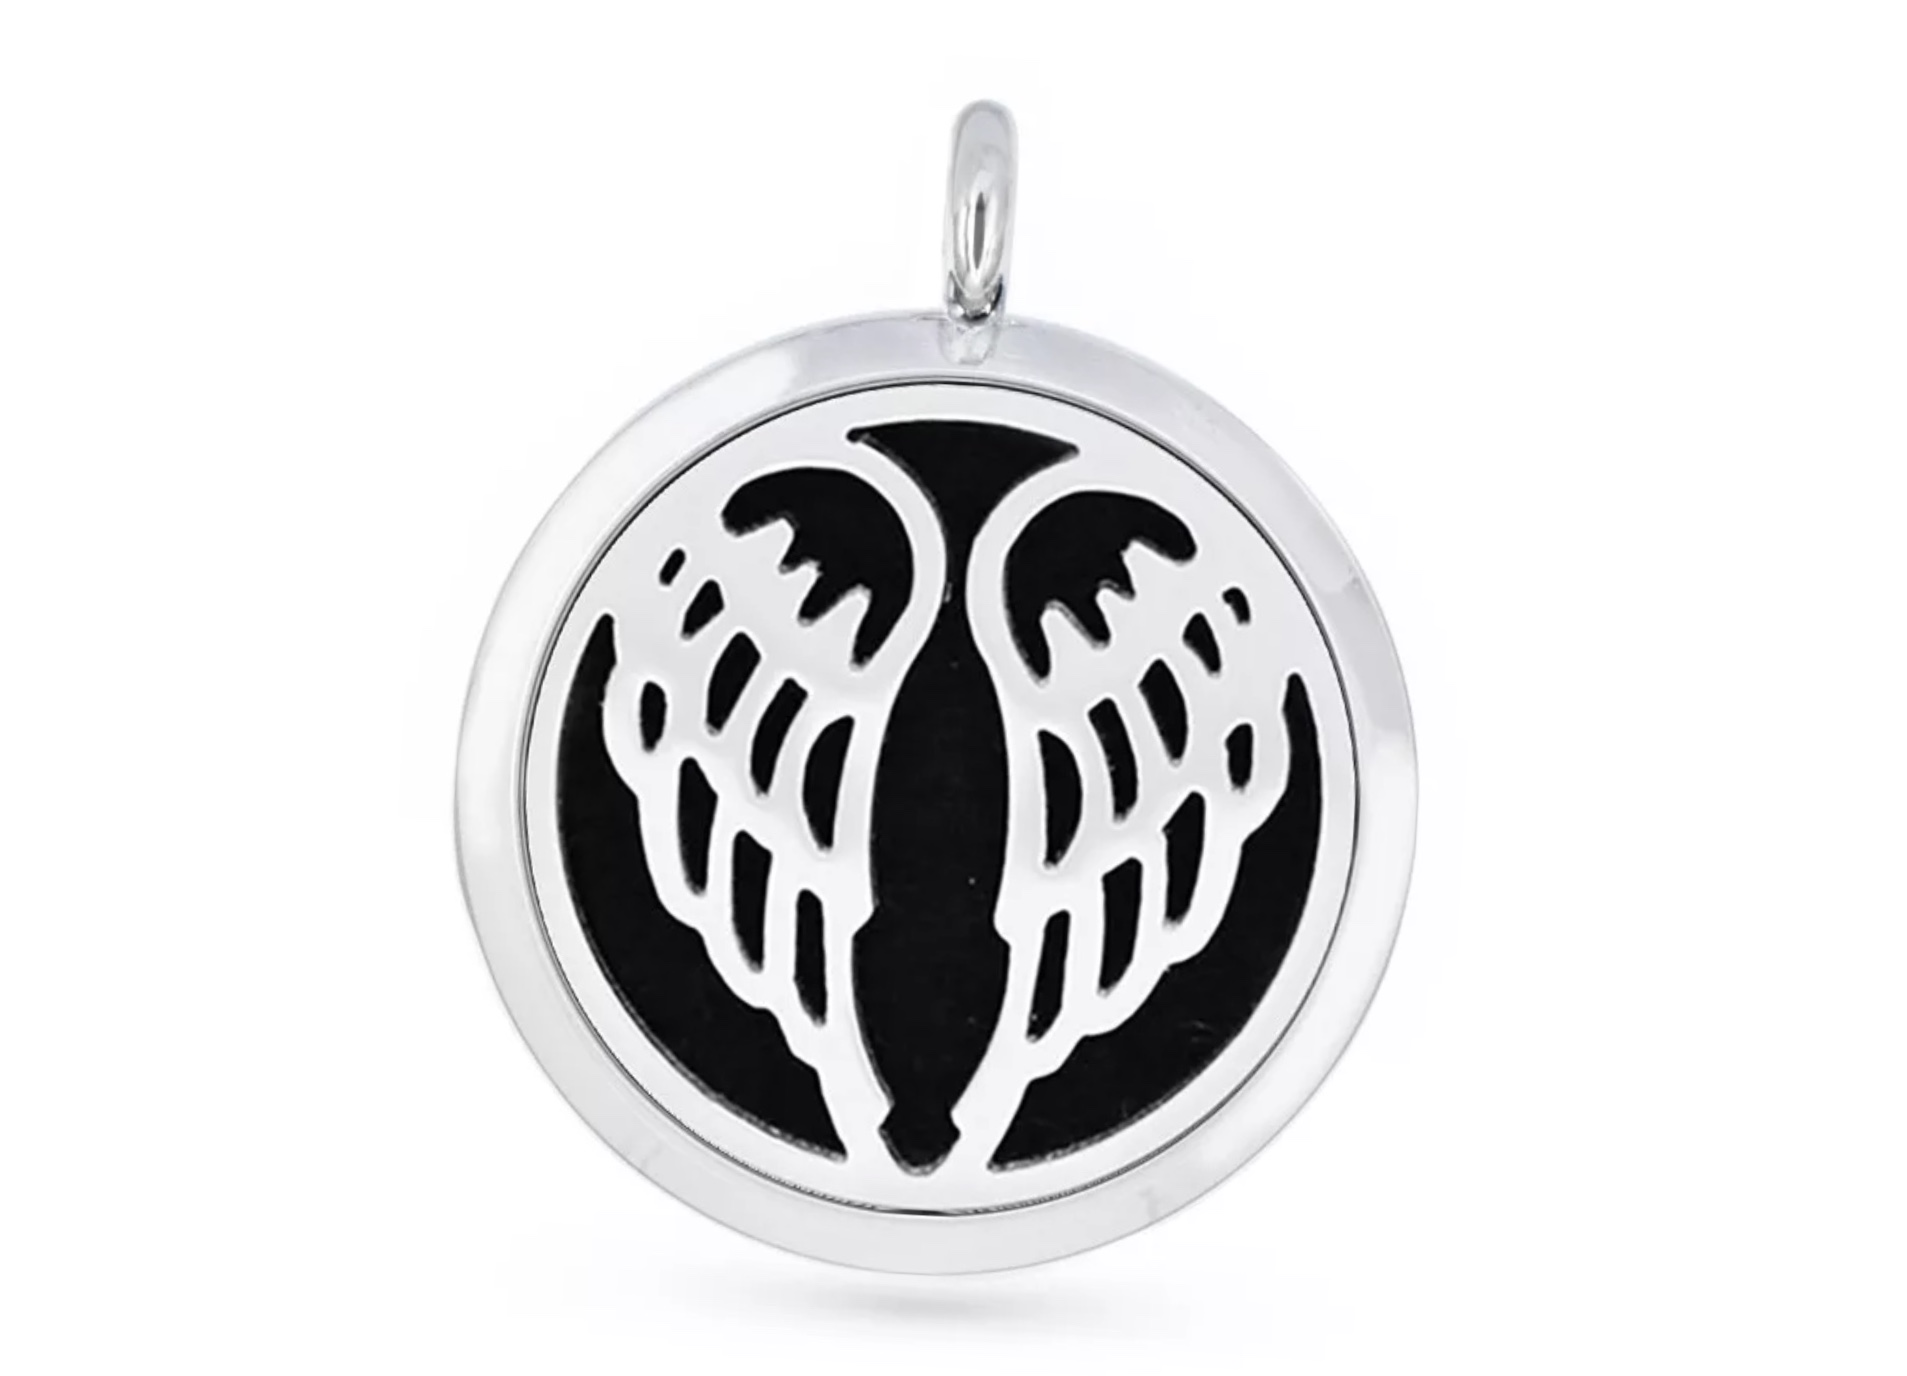 Aromatherapy Diffuser pendant - Angel wings 30mm